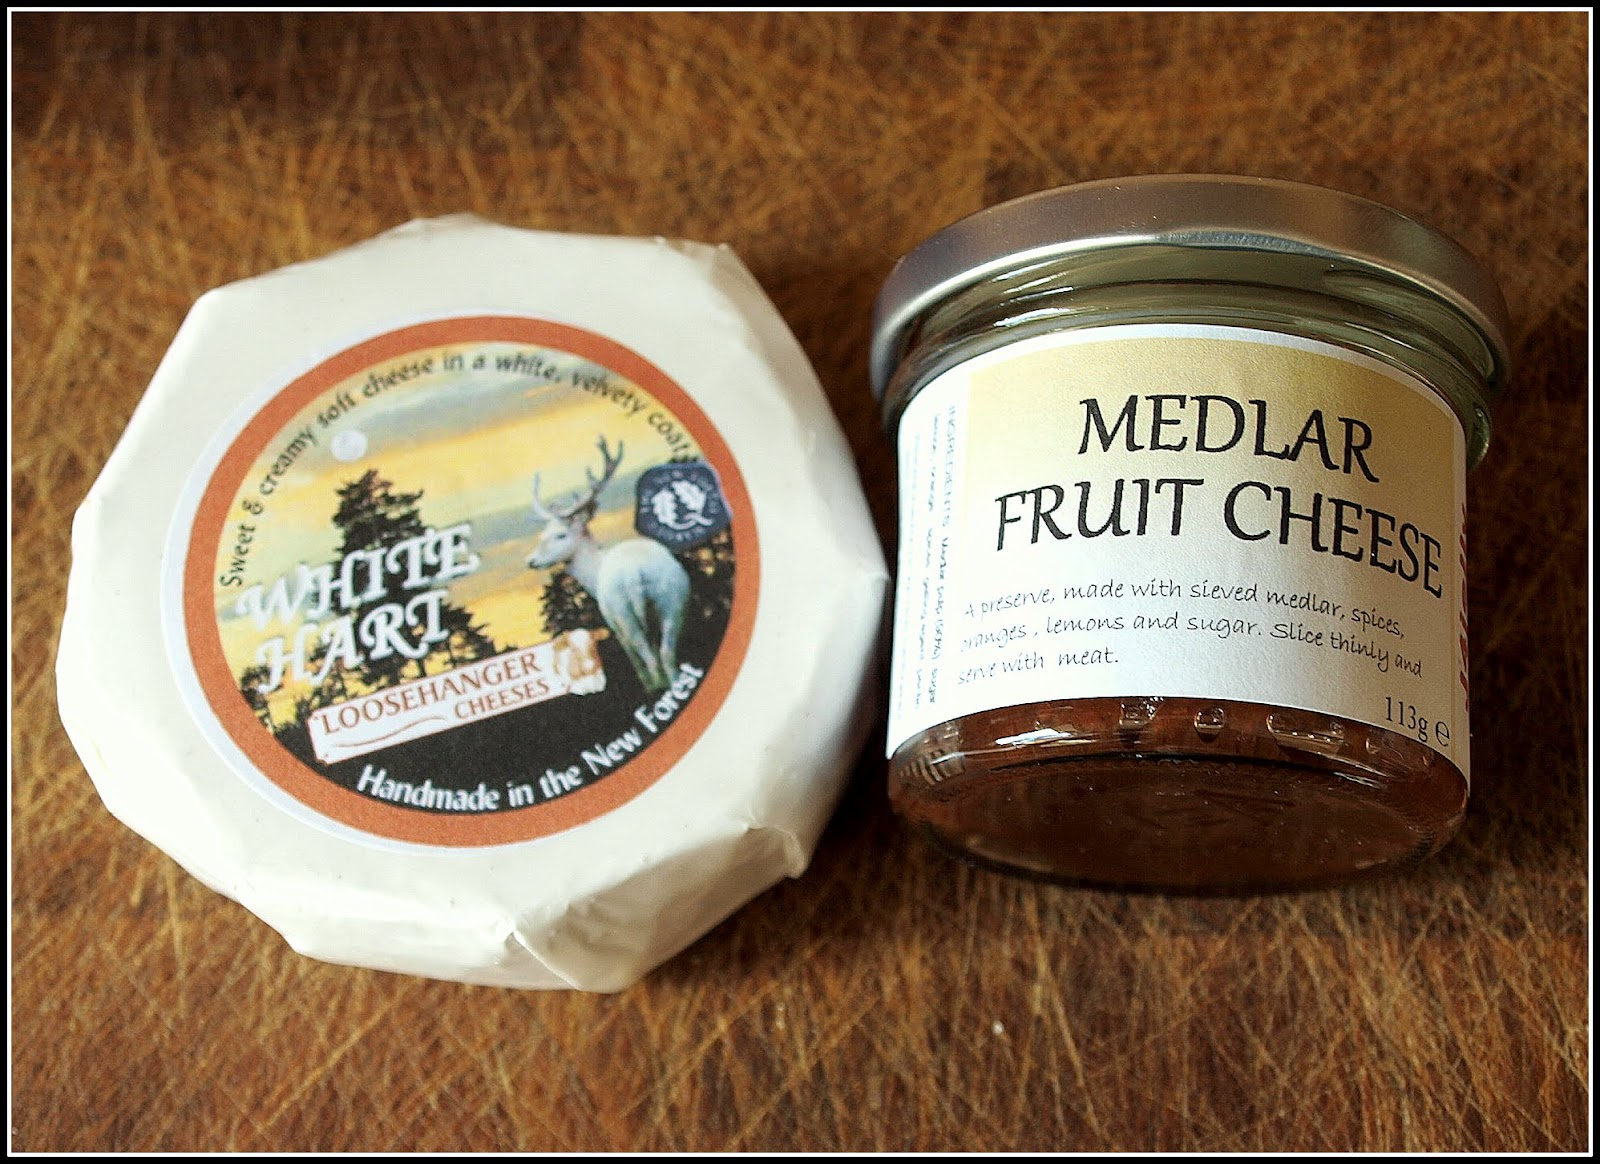 ... fruit which had i source abuse report medlar jelly source abuse report